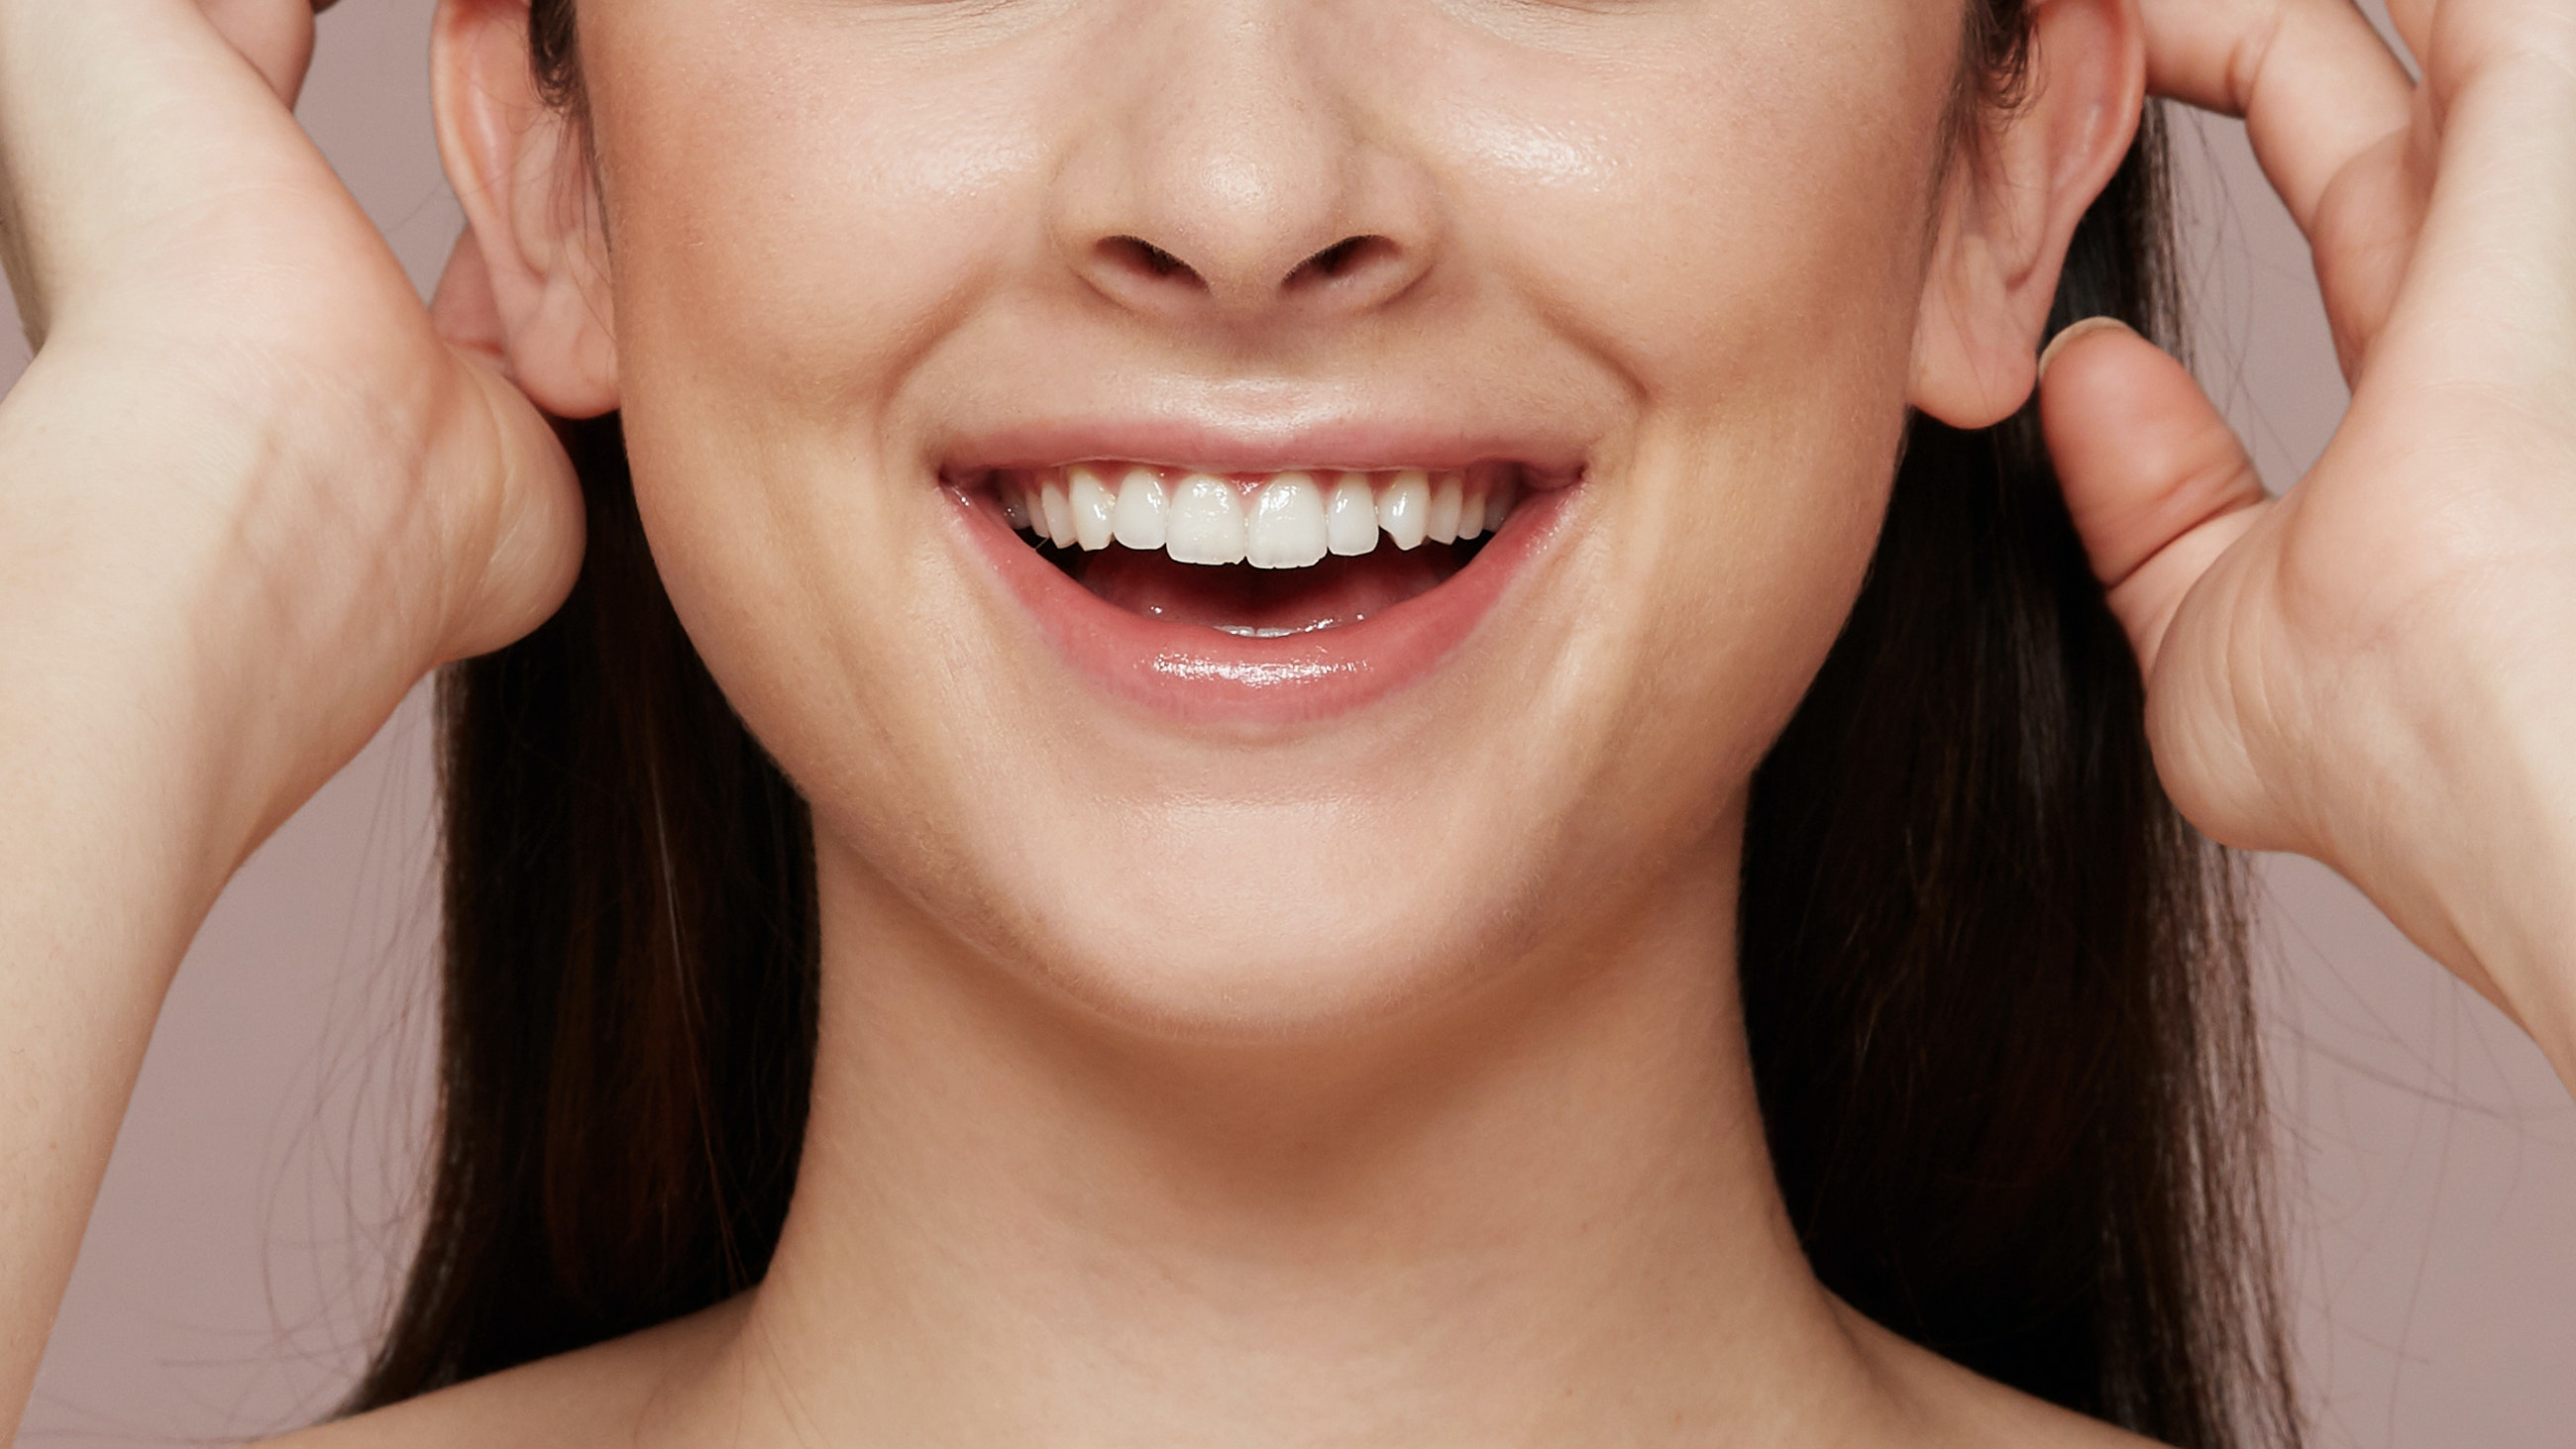 lower half of smiling woman's face